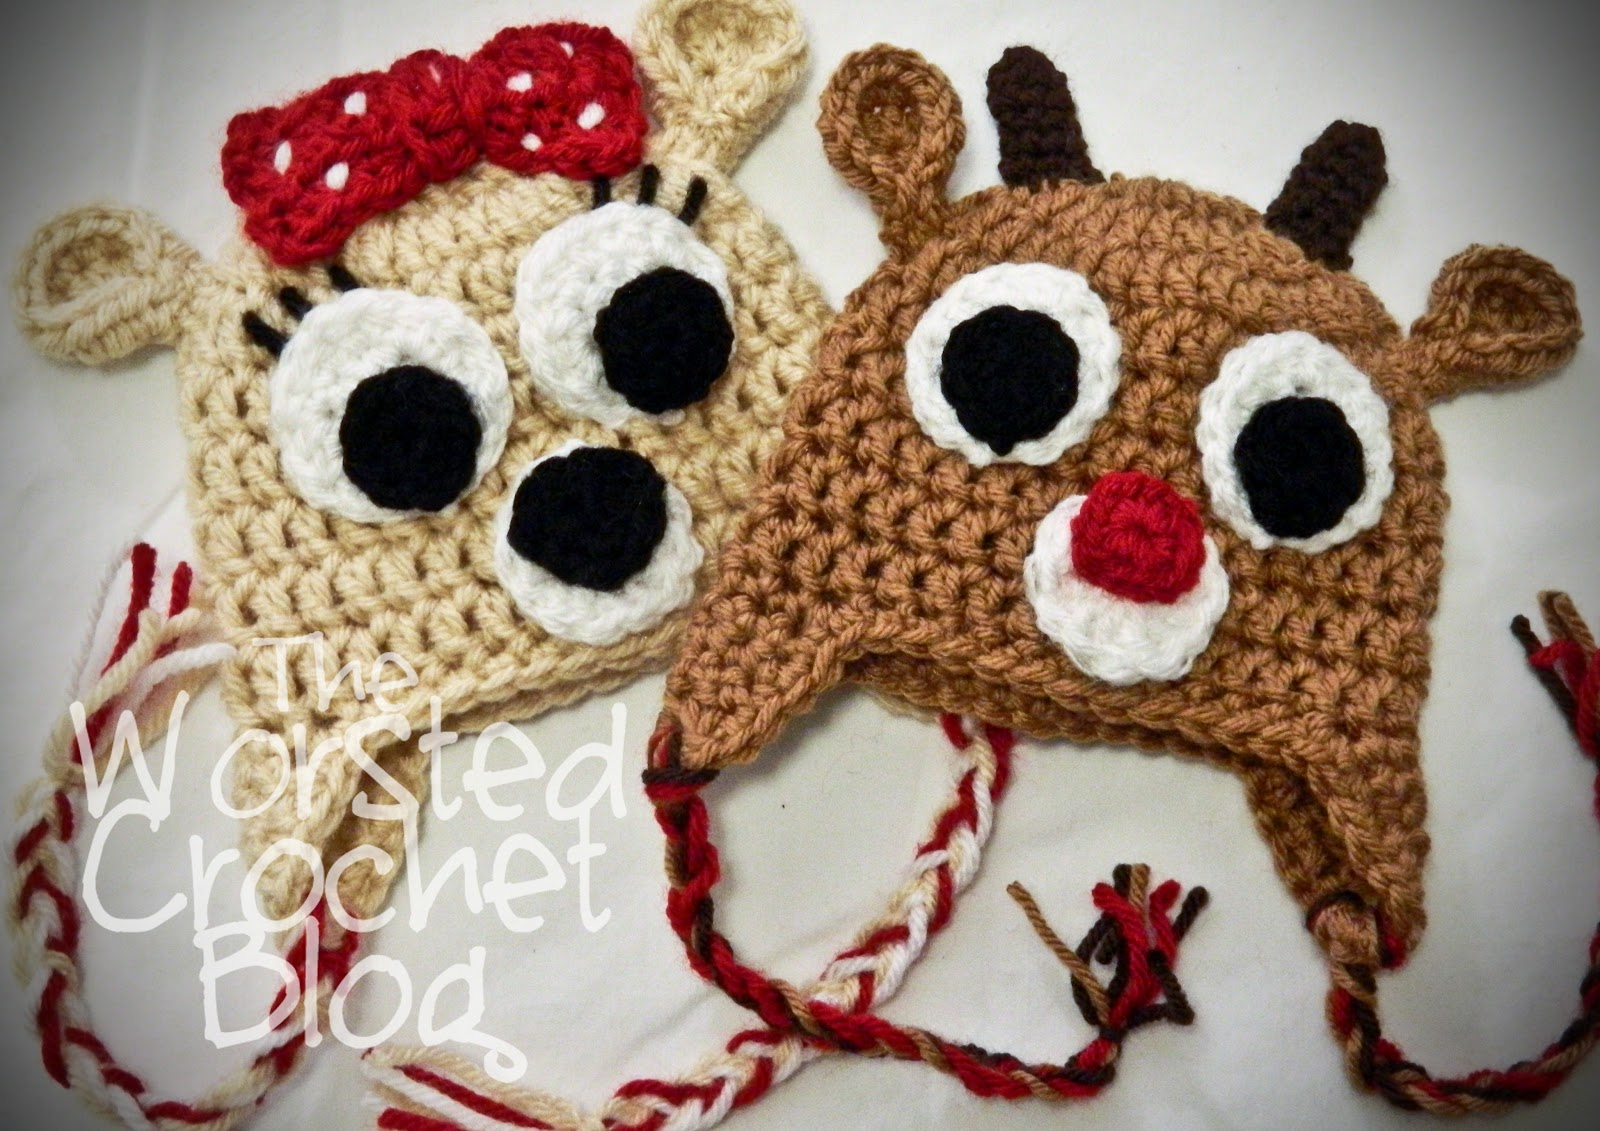 The Worsted Crochet Blog: Rudolph the Red Nosed Reindeer ...